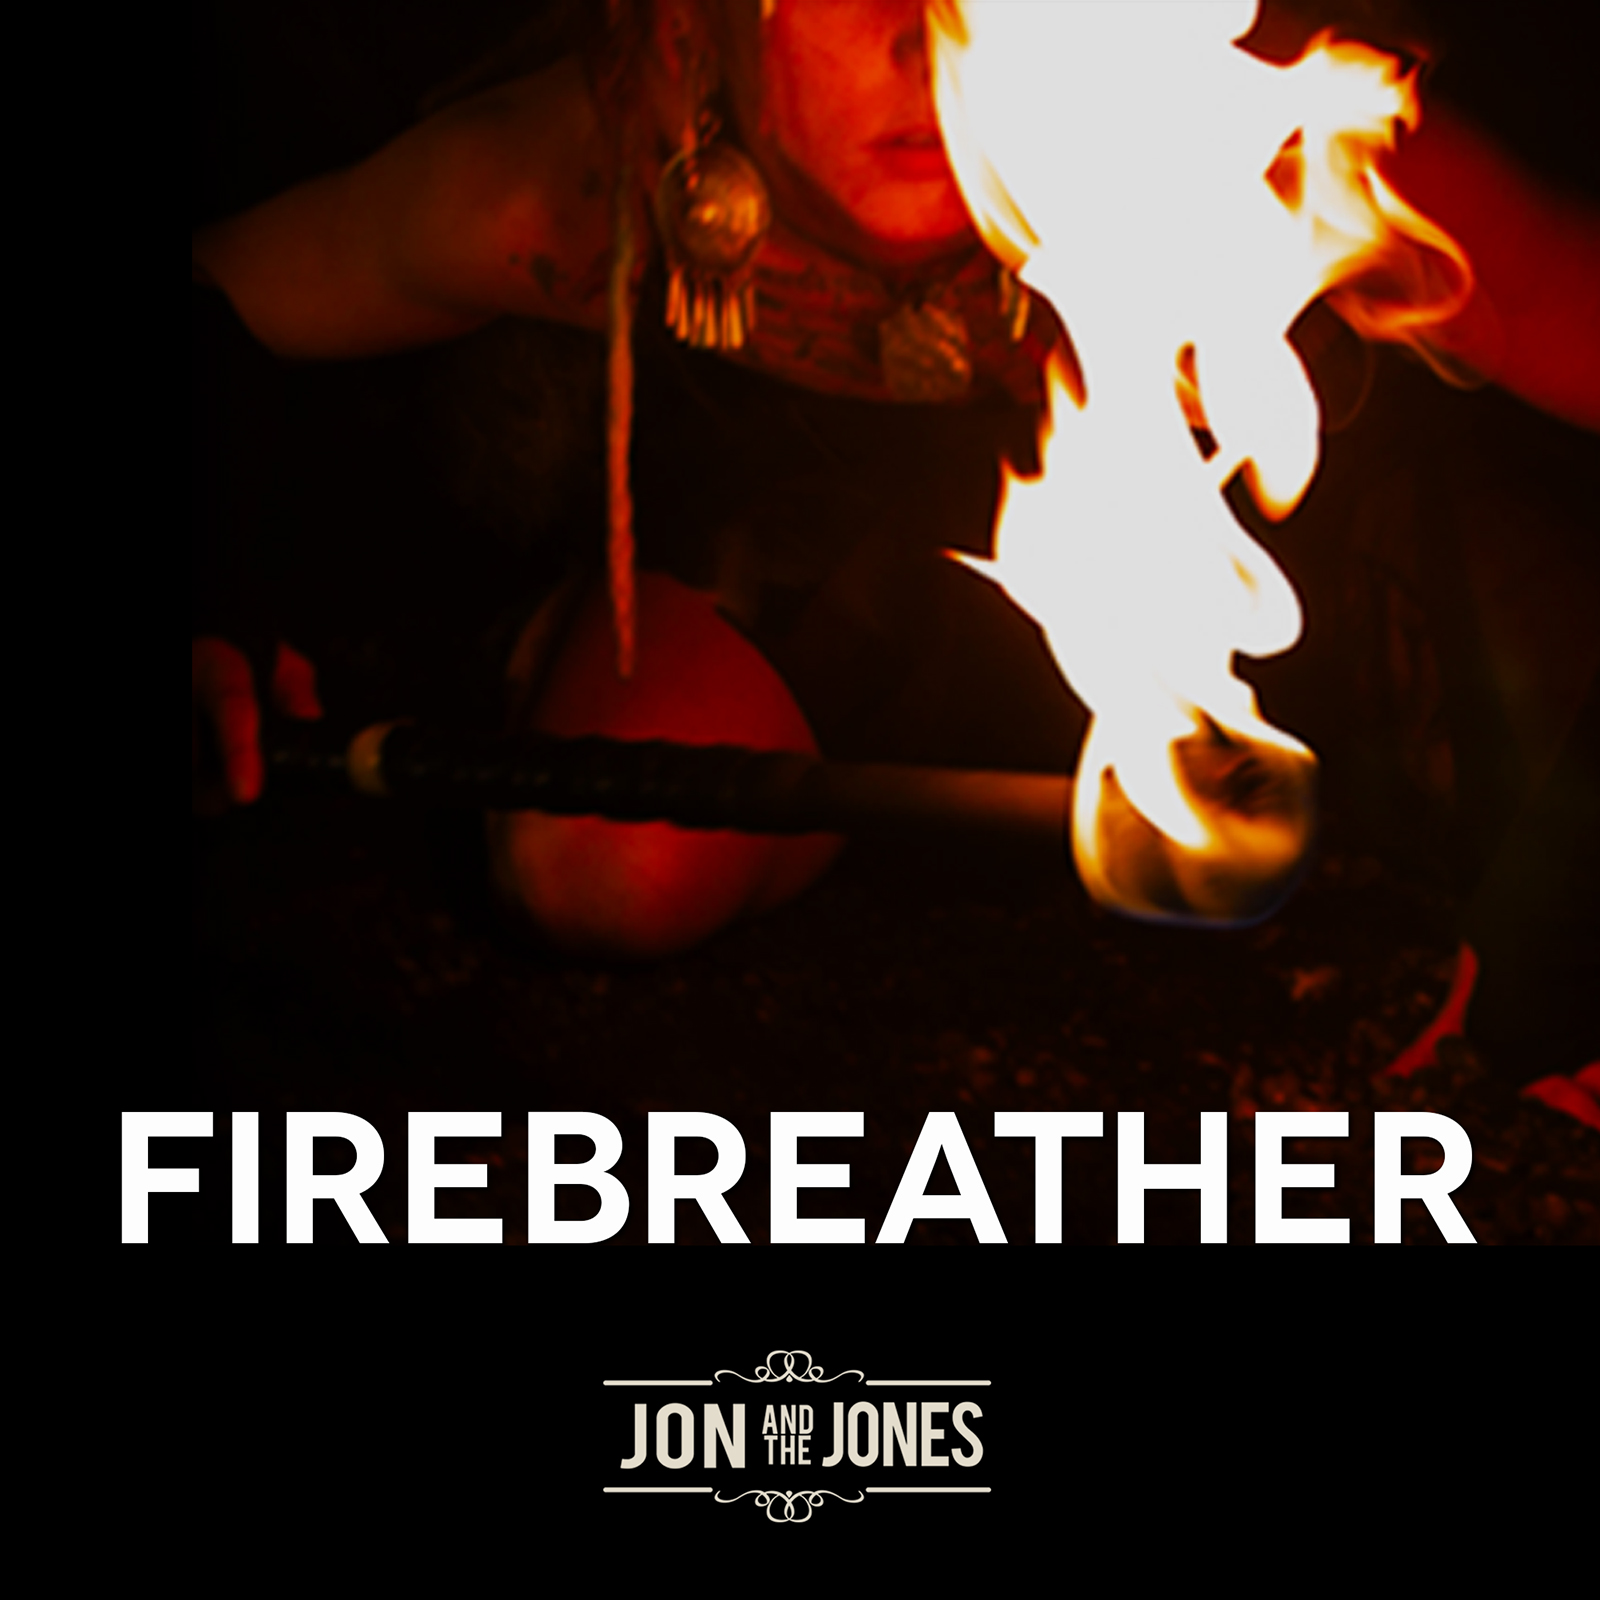 Firebreather, Jon Moodie, Jon and The Jones, BHiMG, BHi Music Group, Record Label, New York, Records, Jon and The Jones